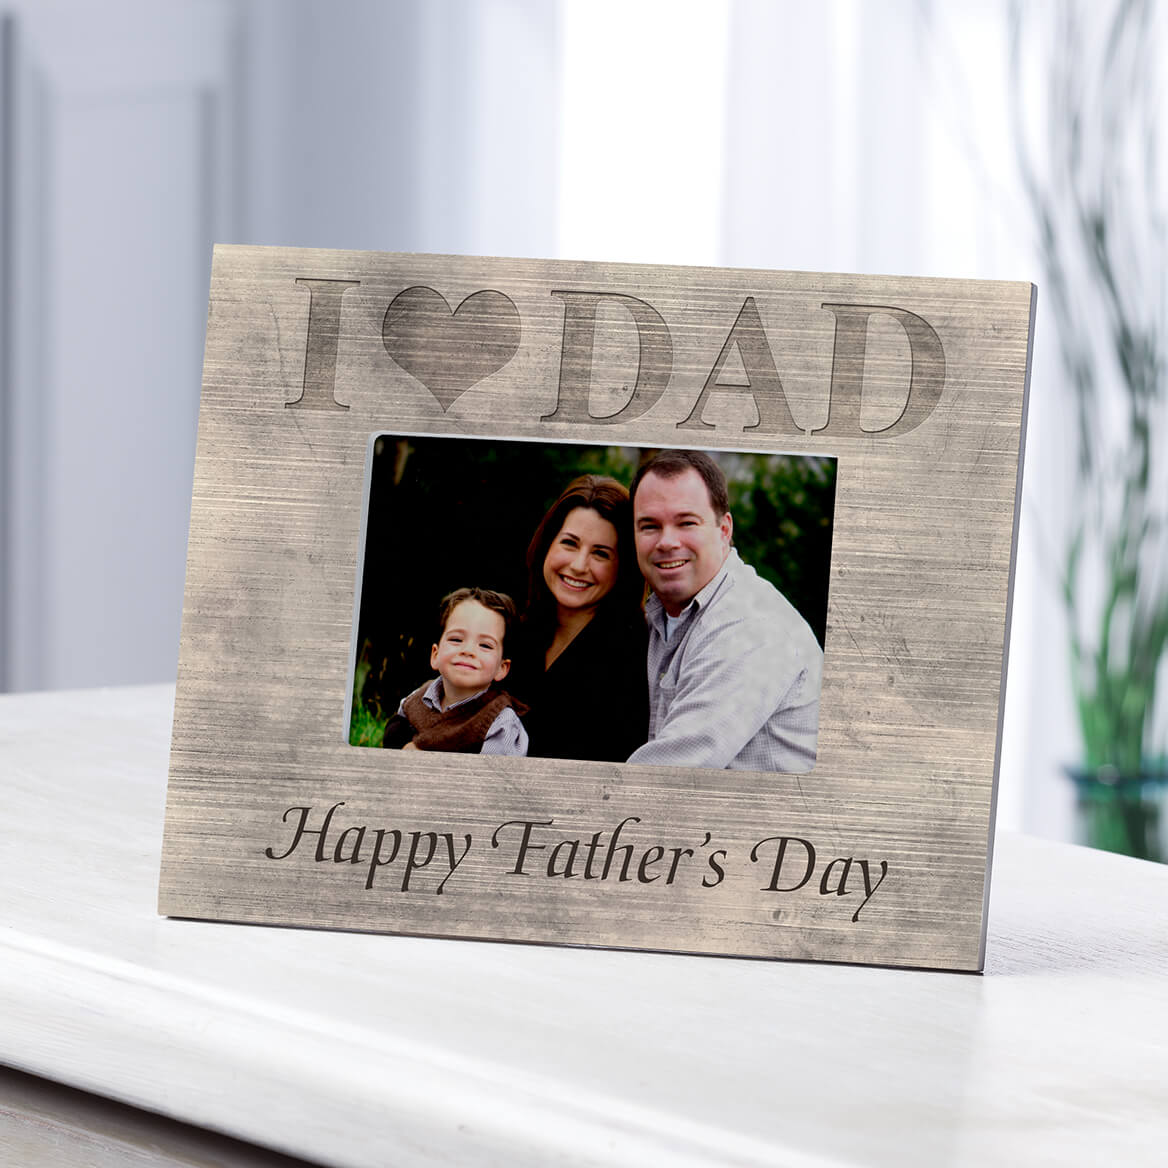 Personalized Shiplap I Love Dad Frame-361182